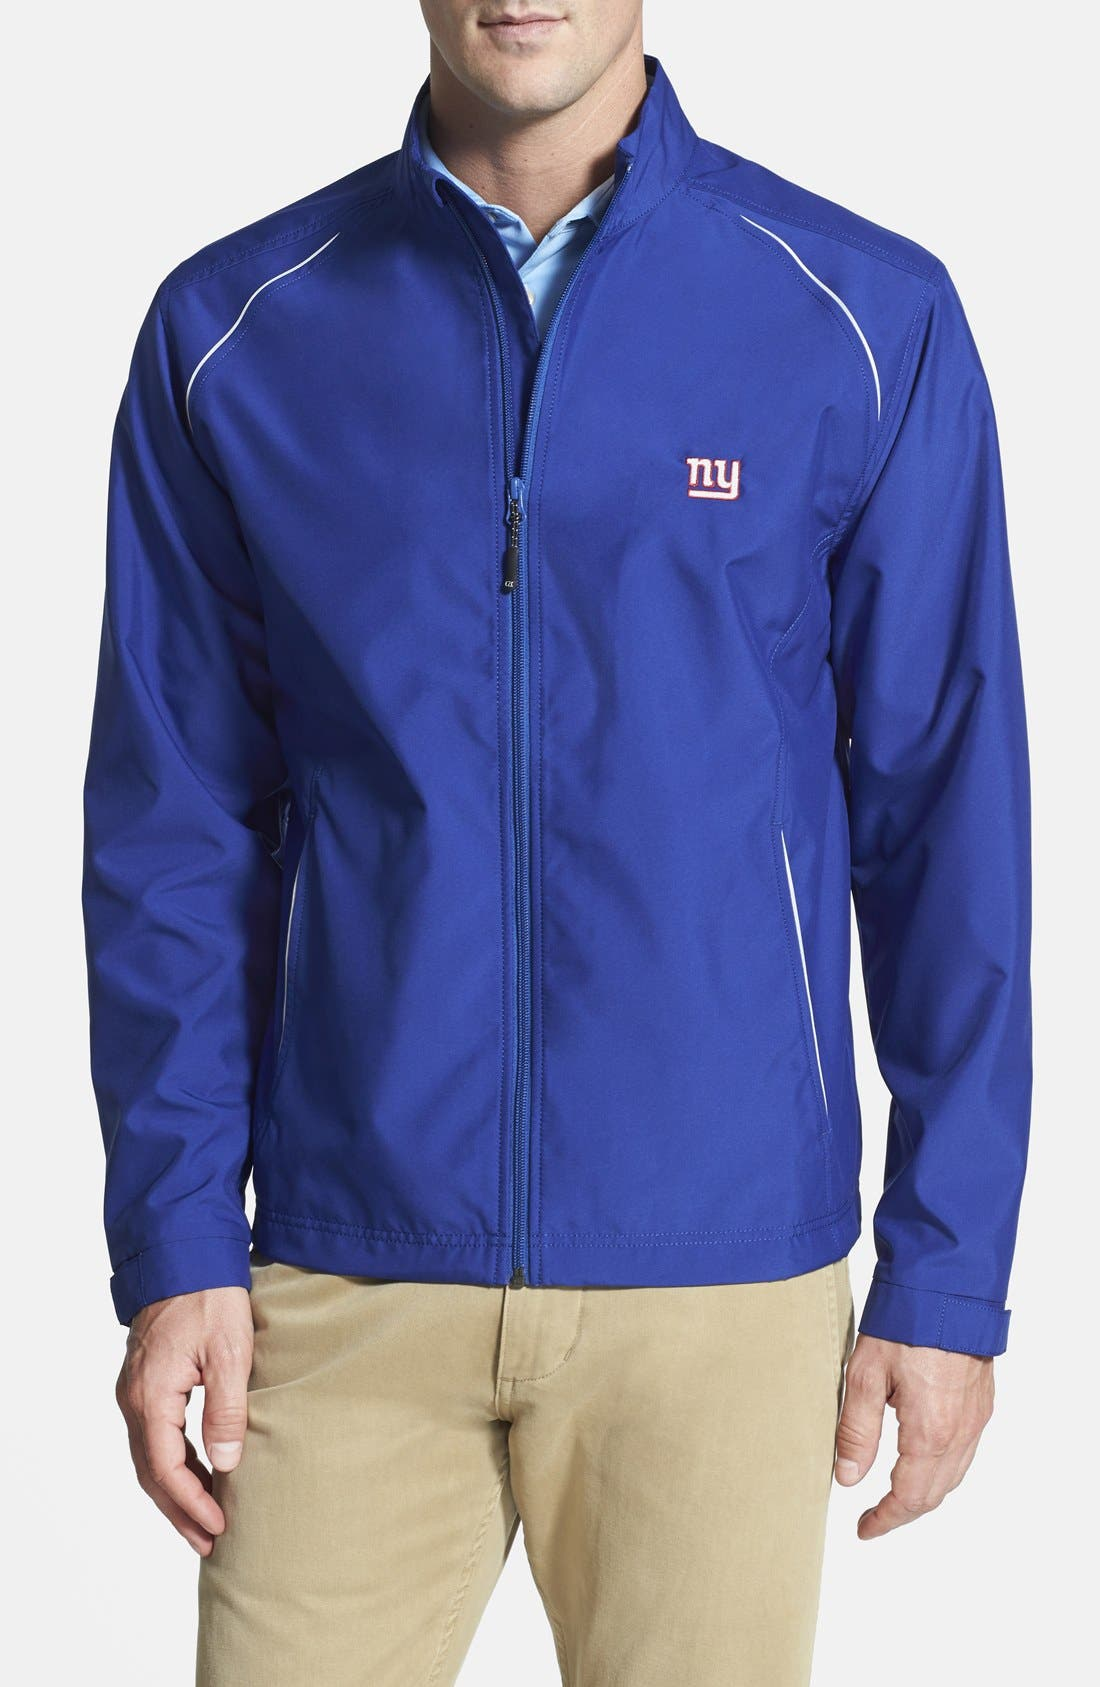 New York Giants - Beacon WeatherTec Wind & Water Resistant Jacket,                         Main,                         color, Tour Blue